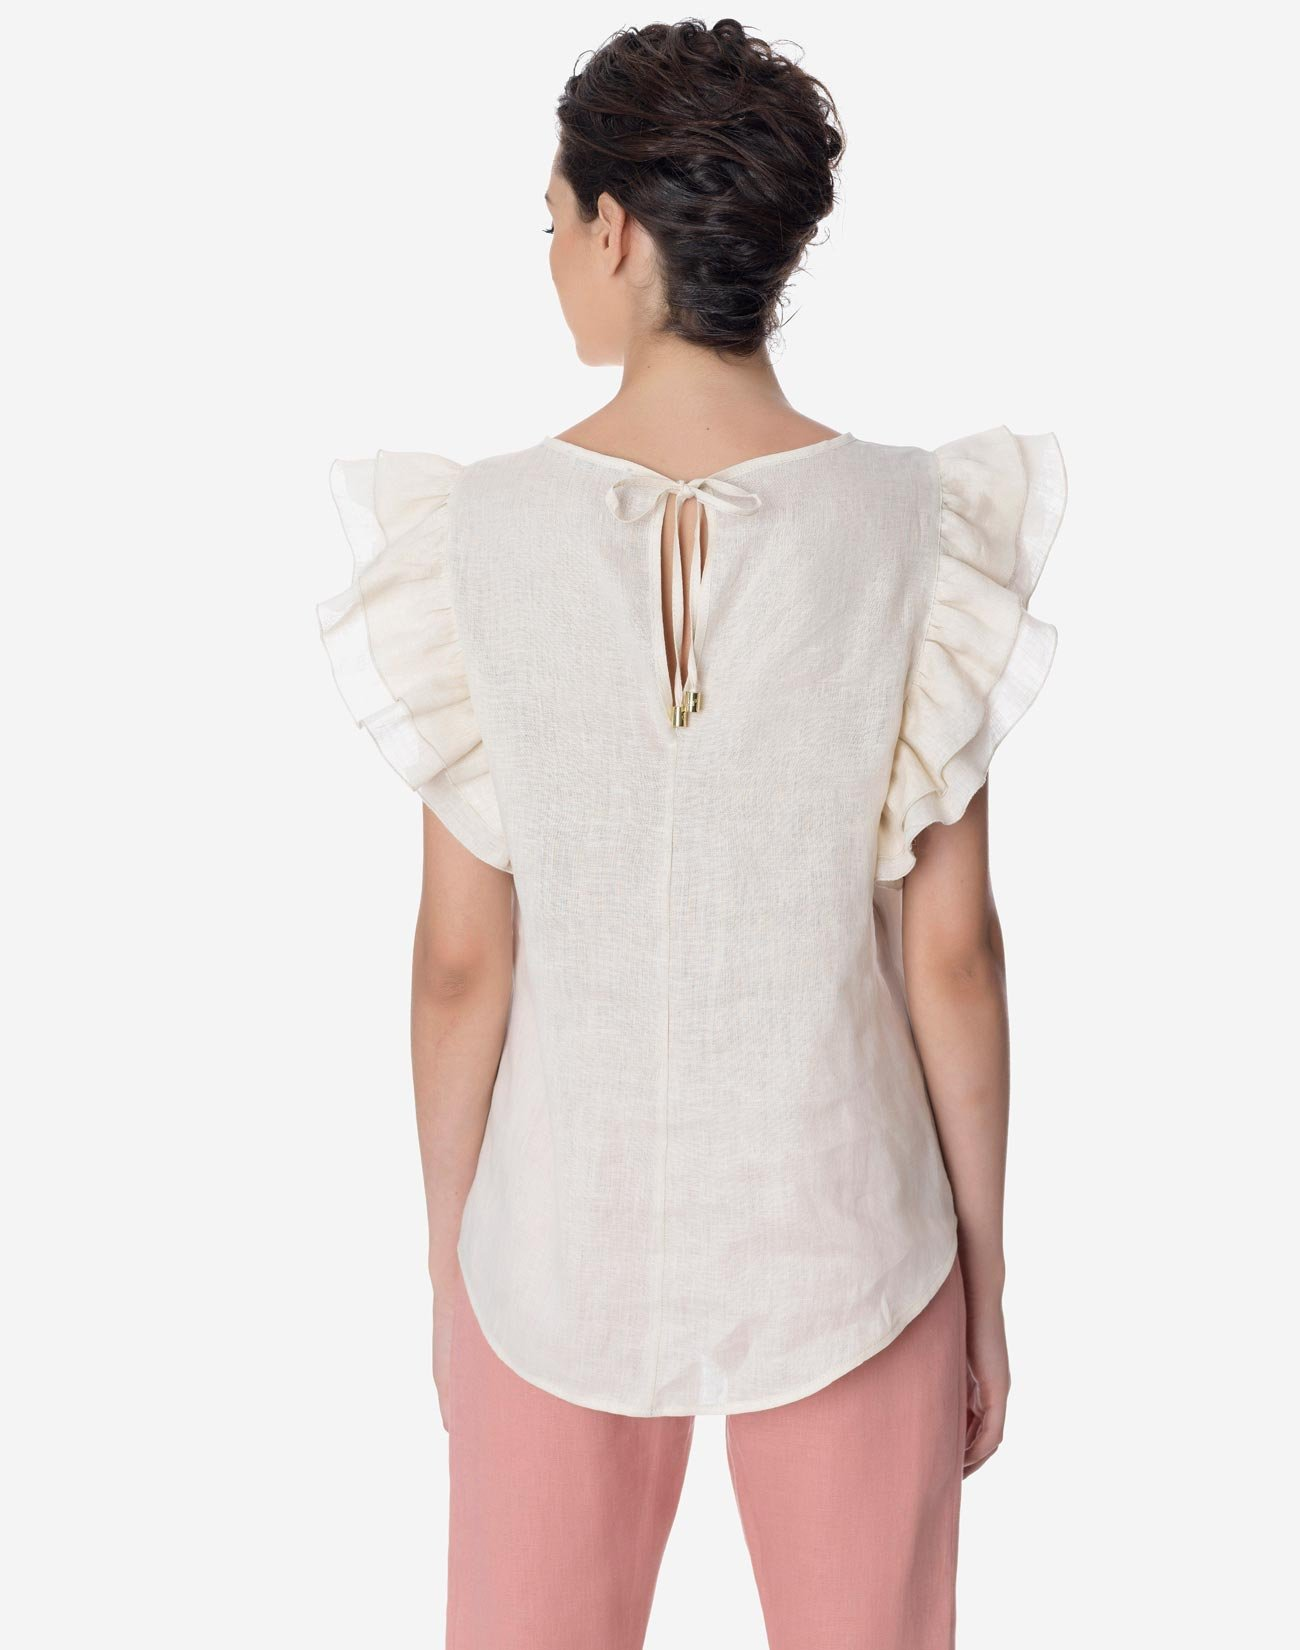 Linen top with double ruffles